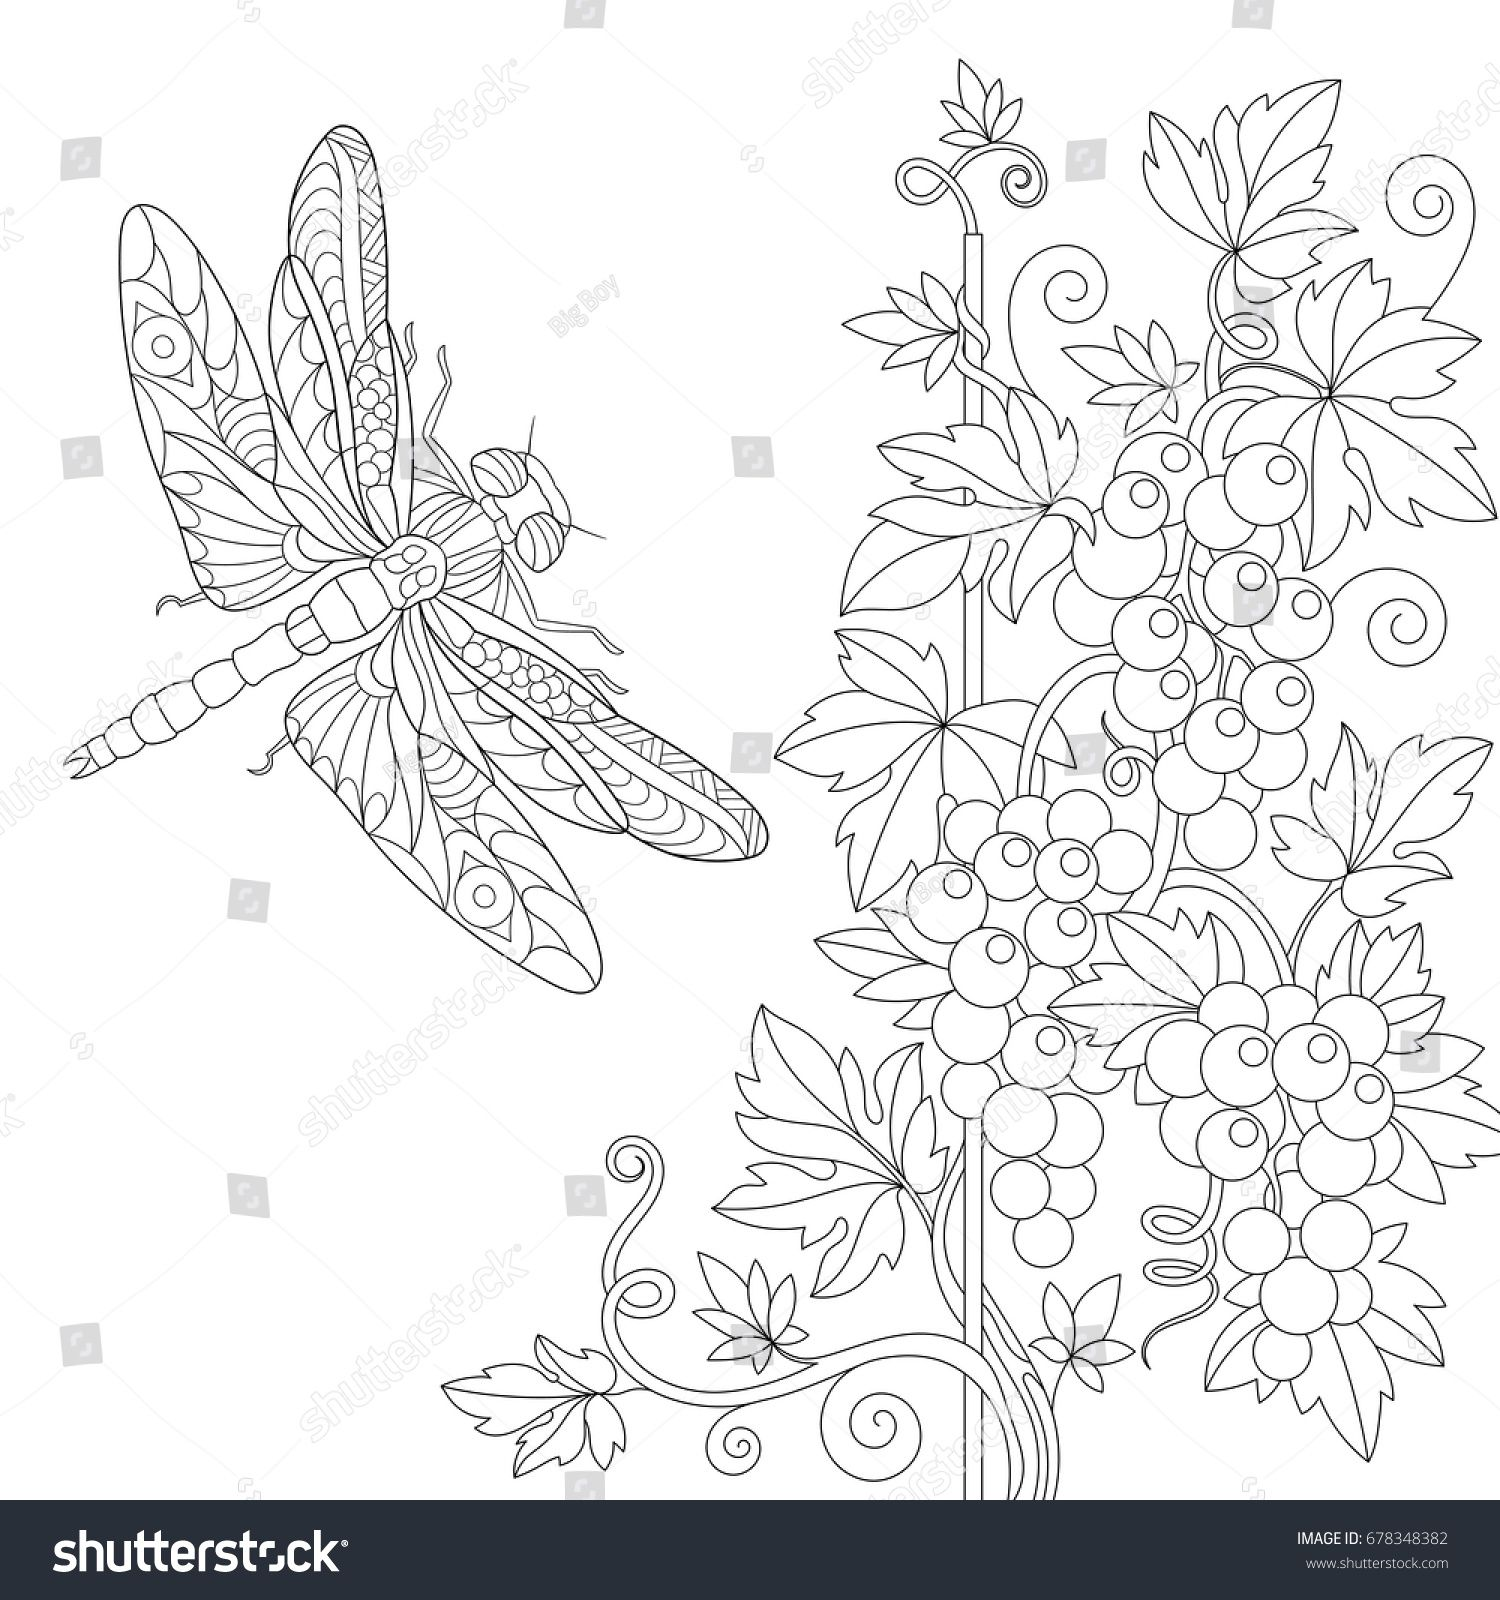 Coloring page of dragonfly and grape vine. Freehand sketch drawing ...